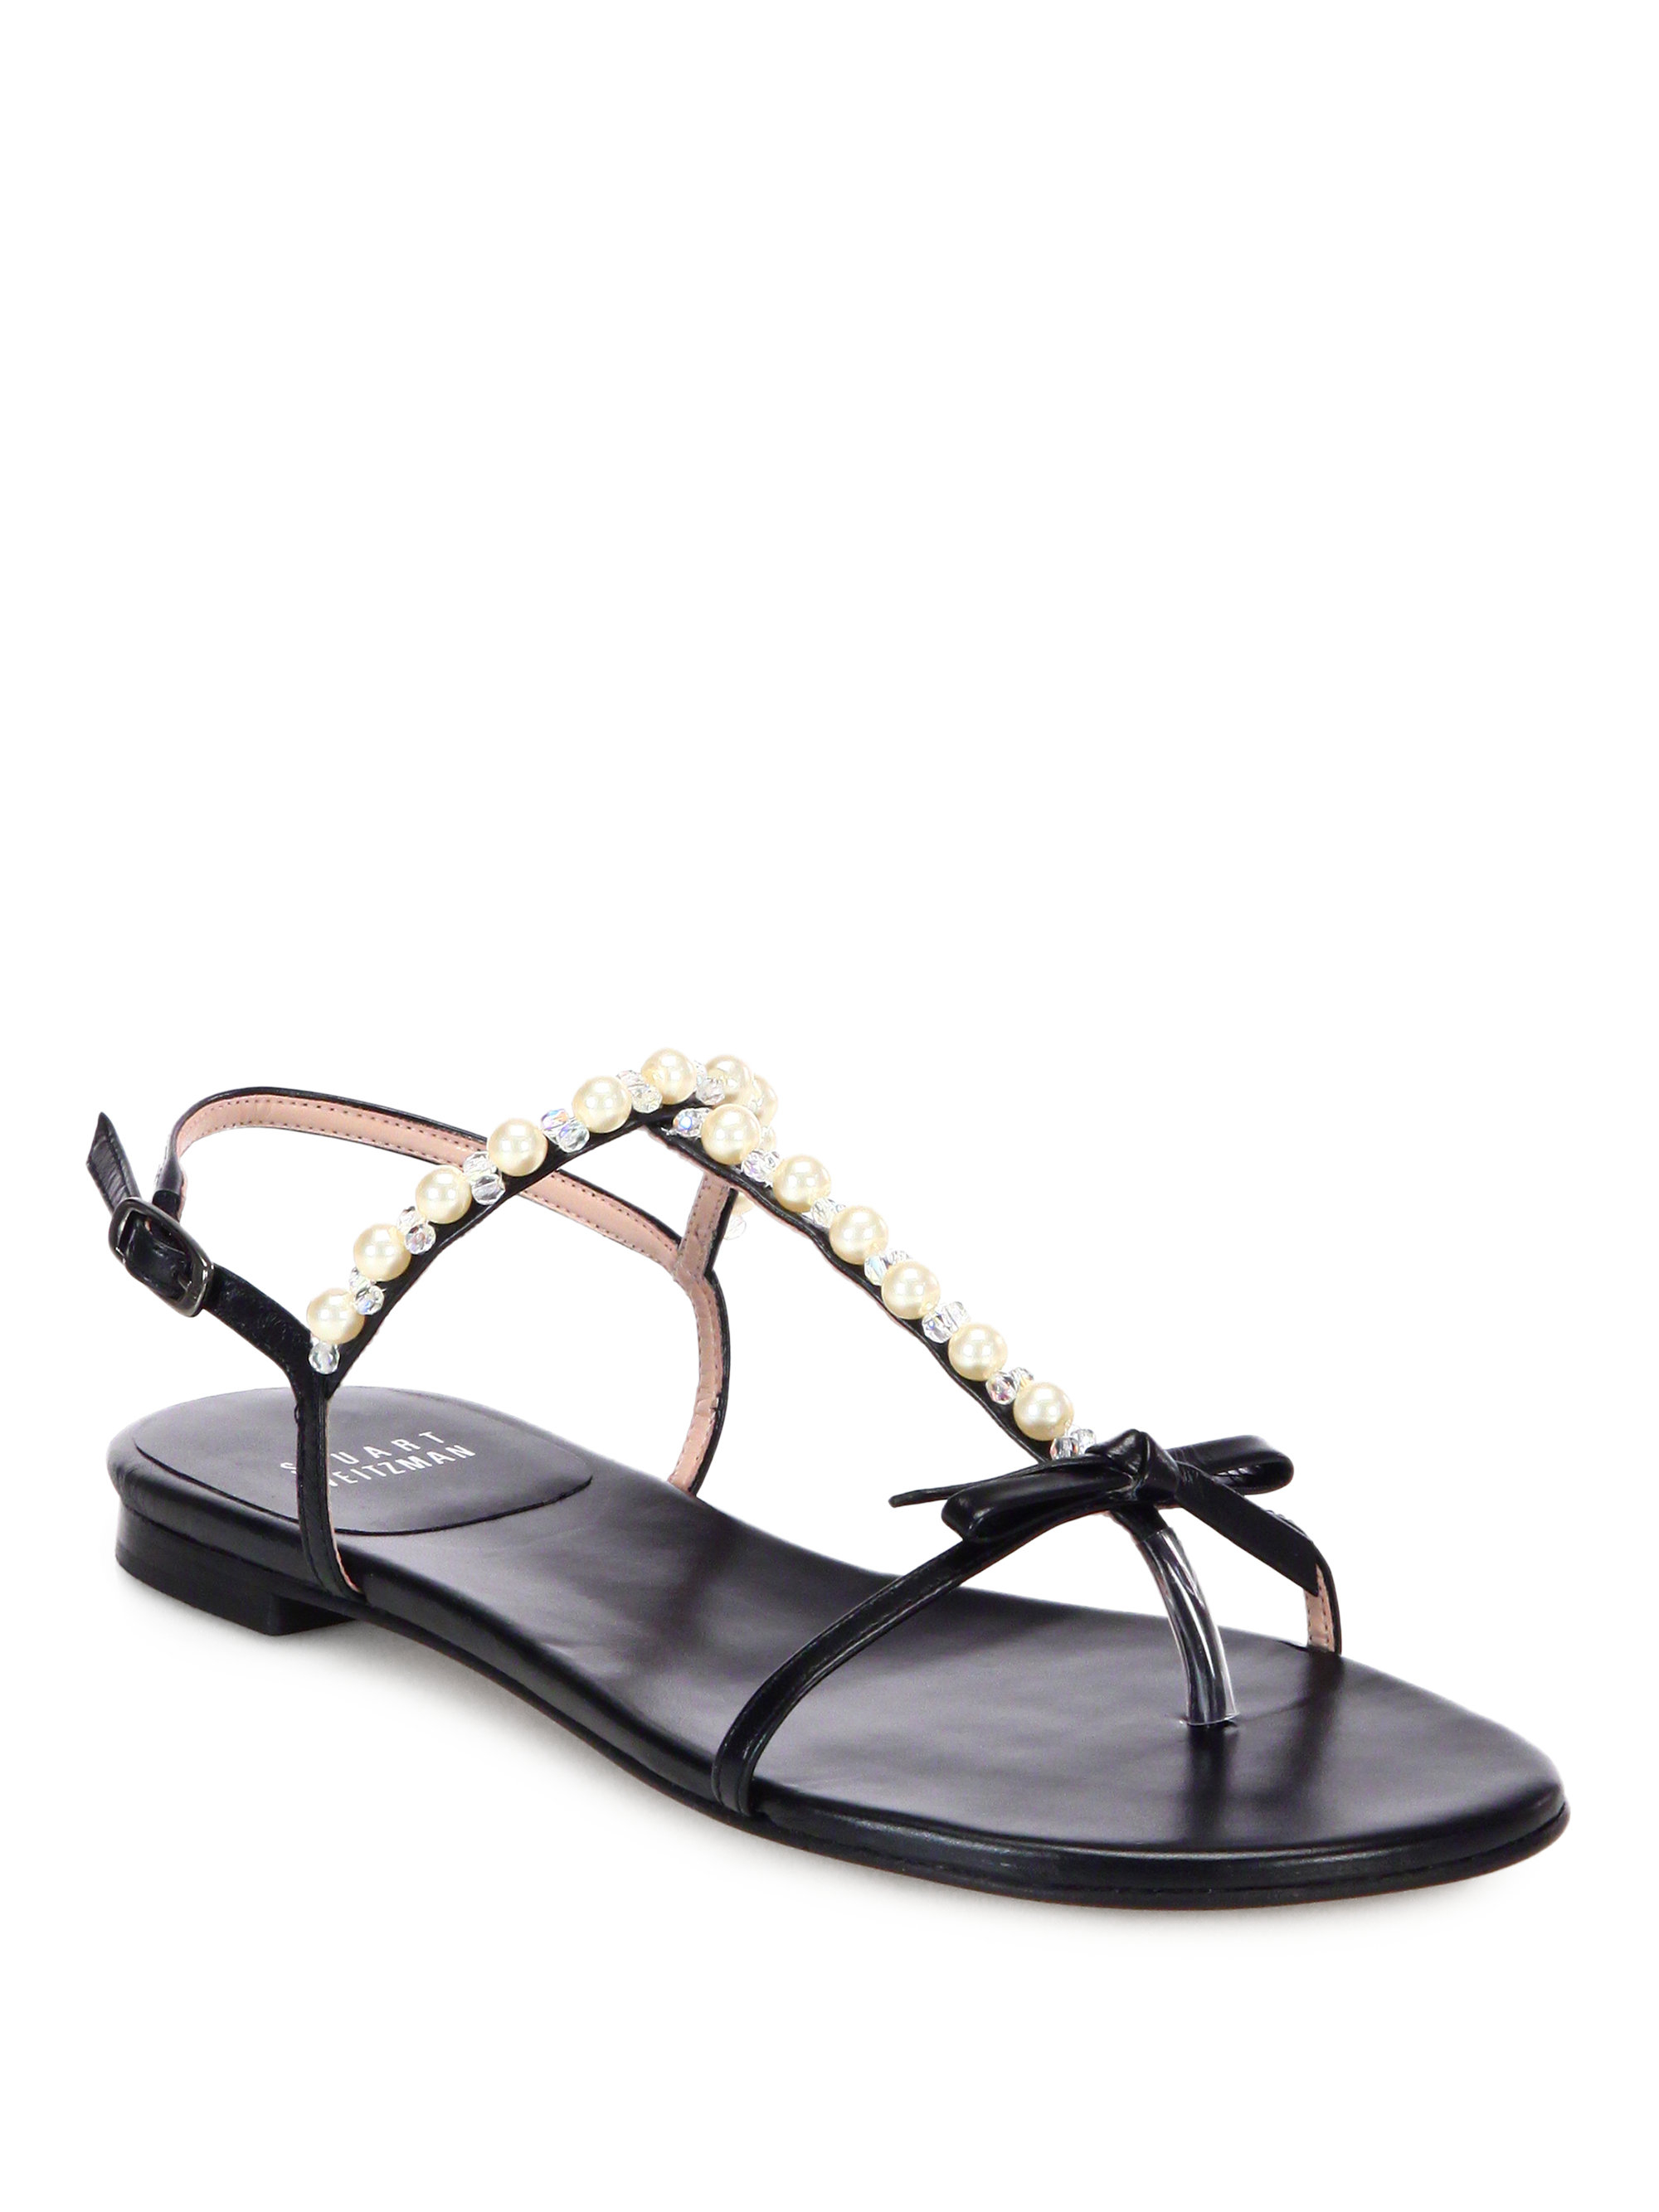 Stuart Weitzman Leather Flip Flops